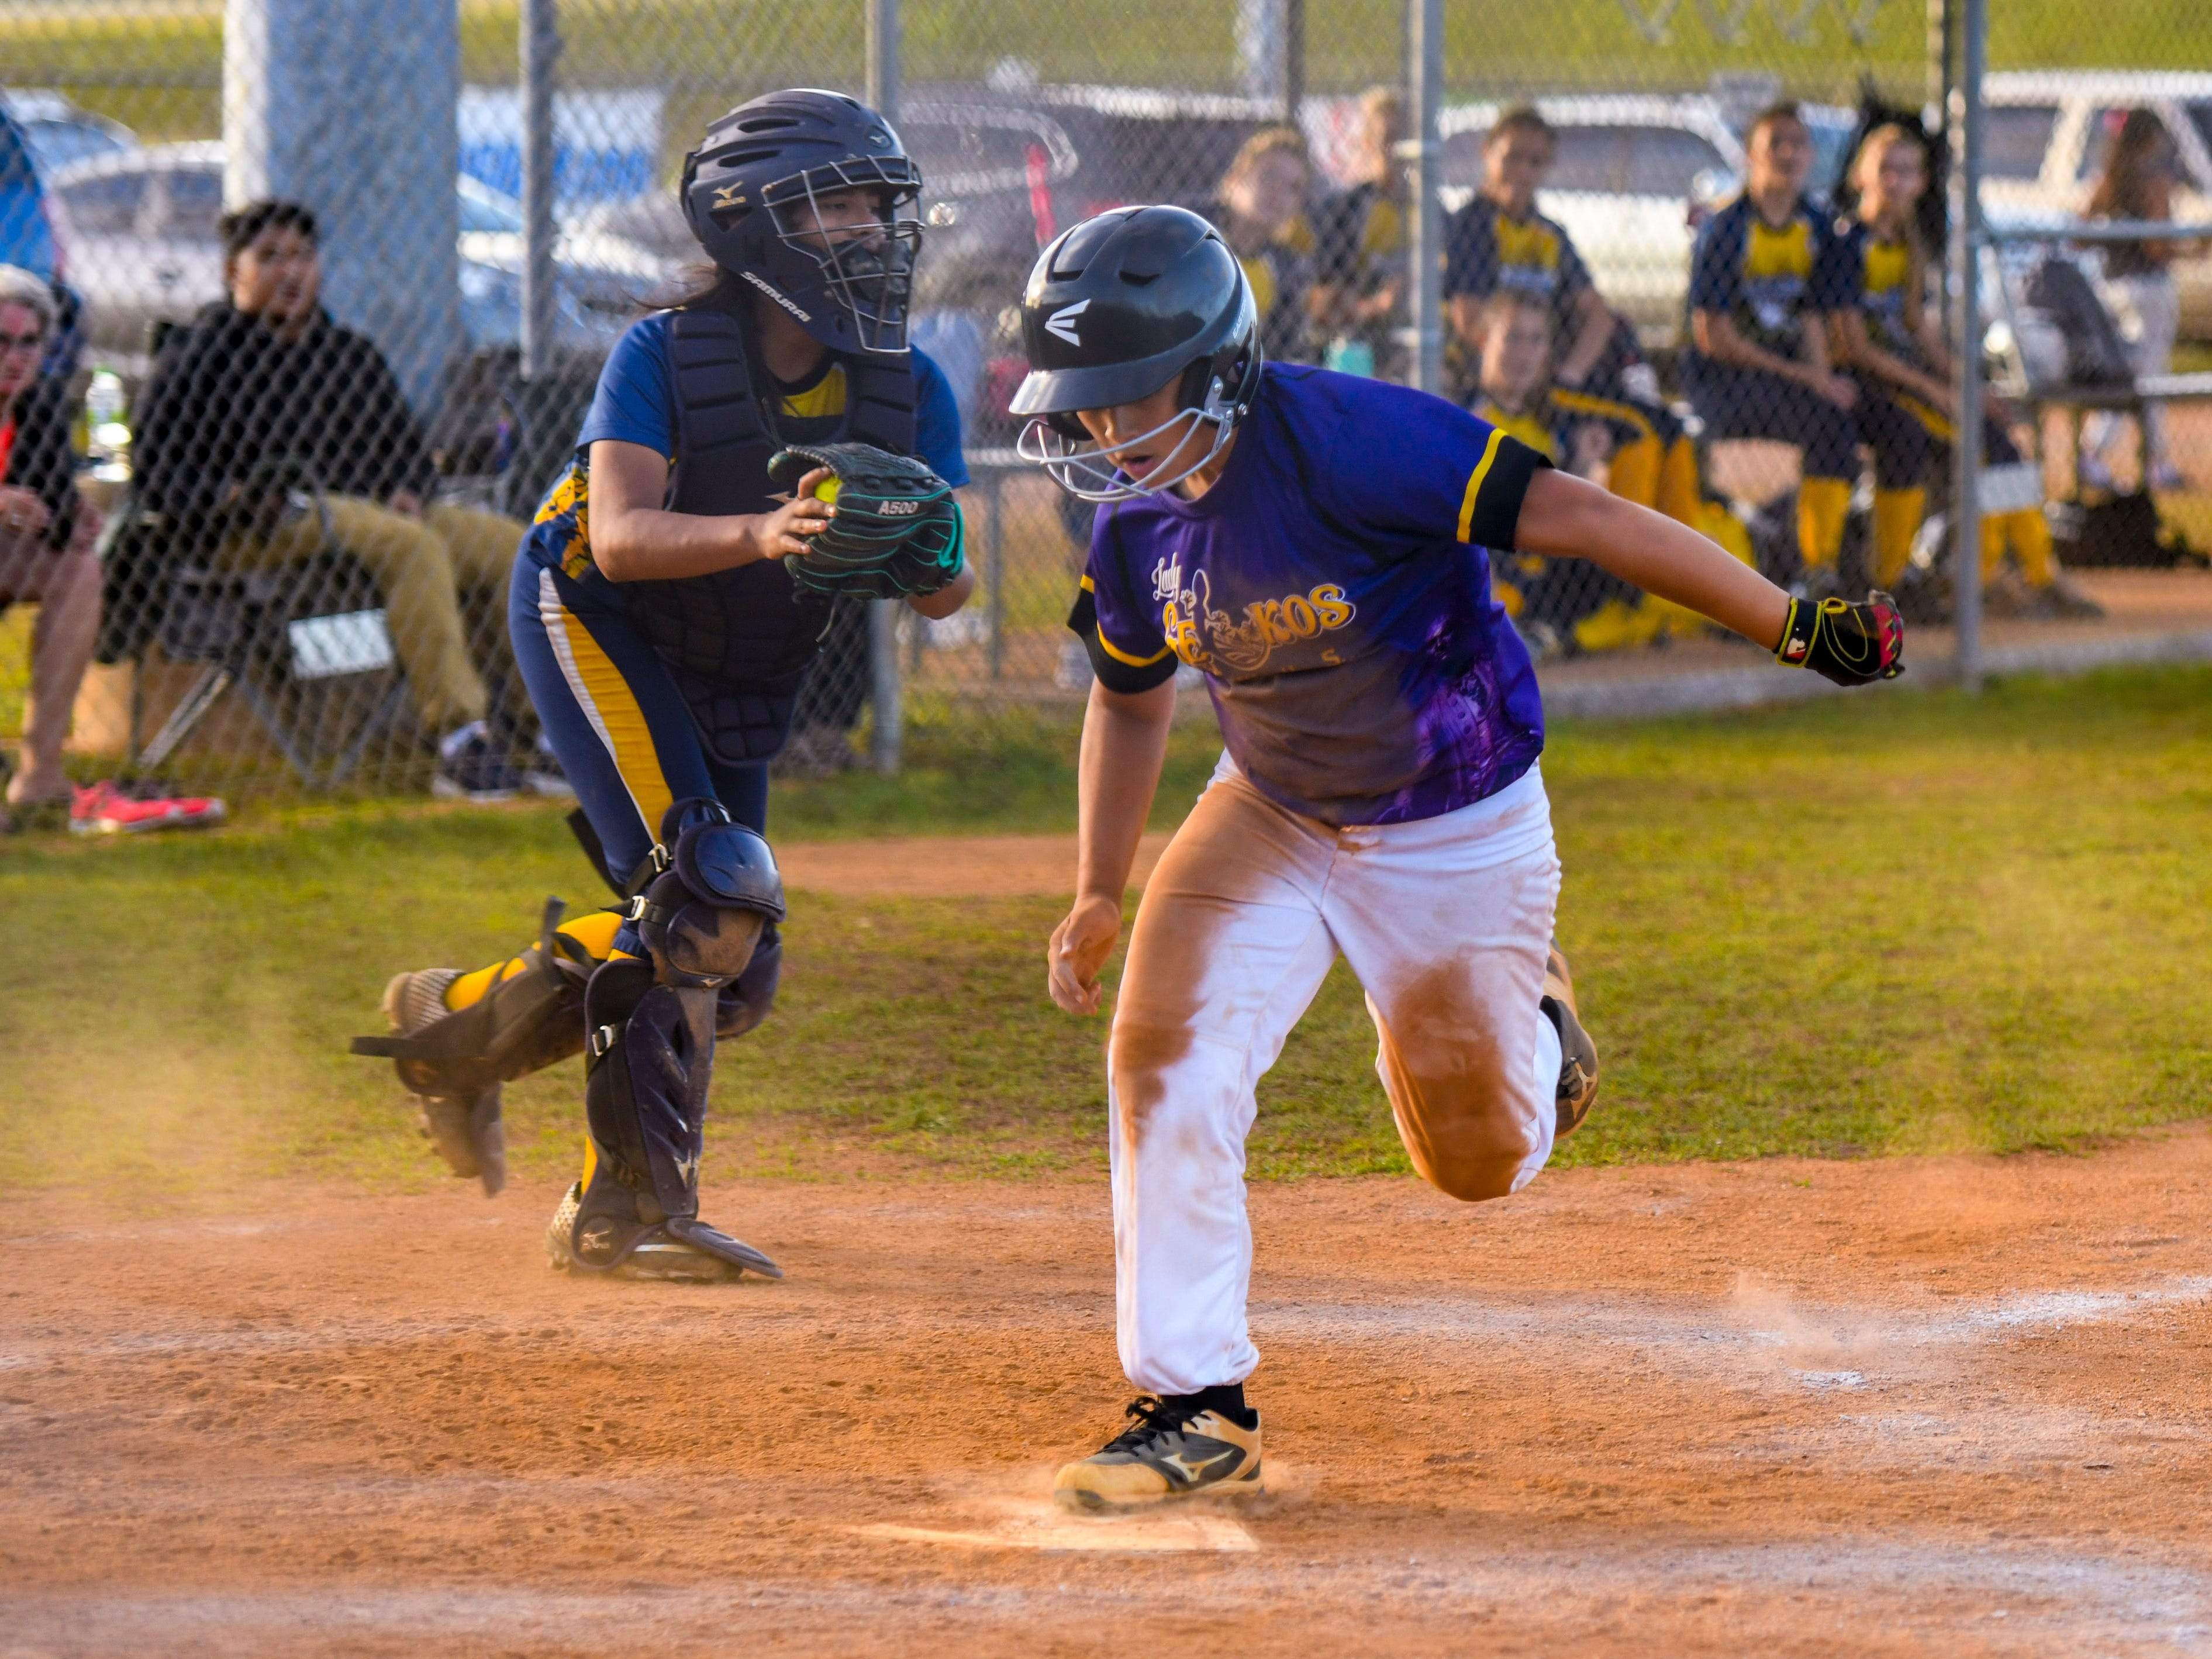 George Washington High School Geckos' Rocki Mesa makes it to homeplate to score a run after almost getting caught between bases during an IIAAG girls softball game against the Guam High School Panthers at Okkodo High School in Dededo on Thursday, March 7, 2019.